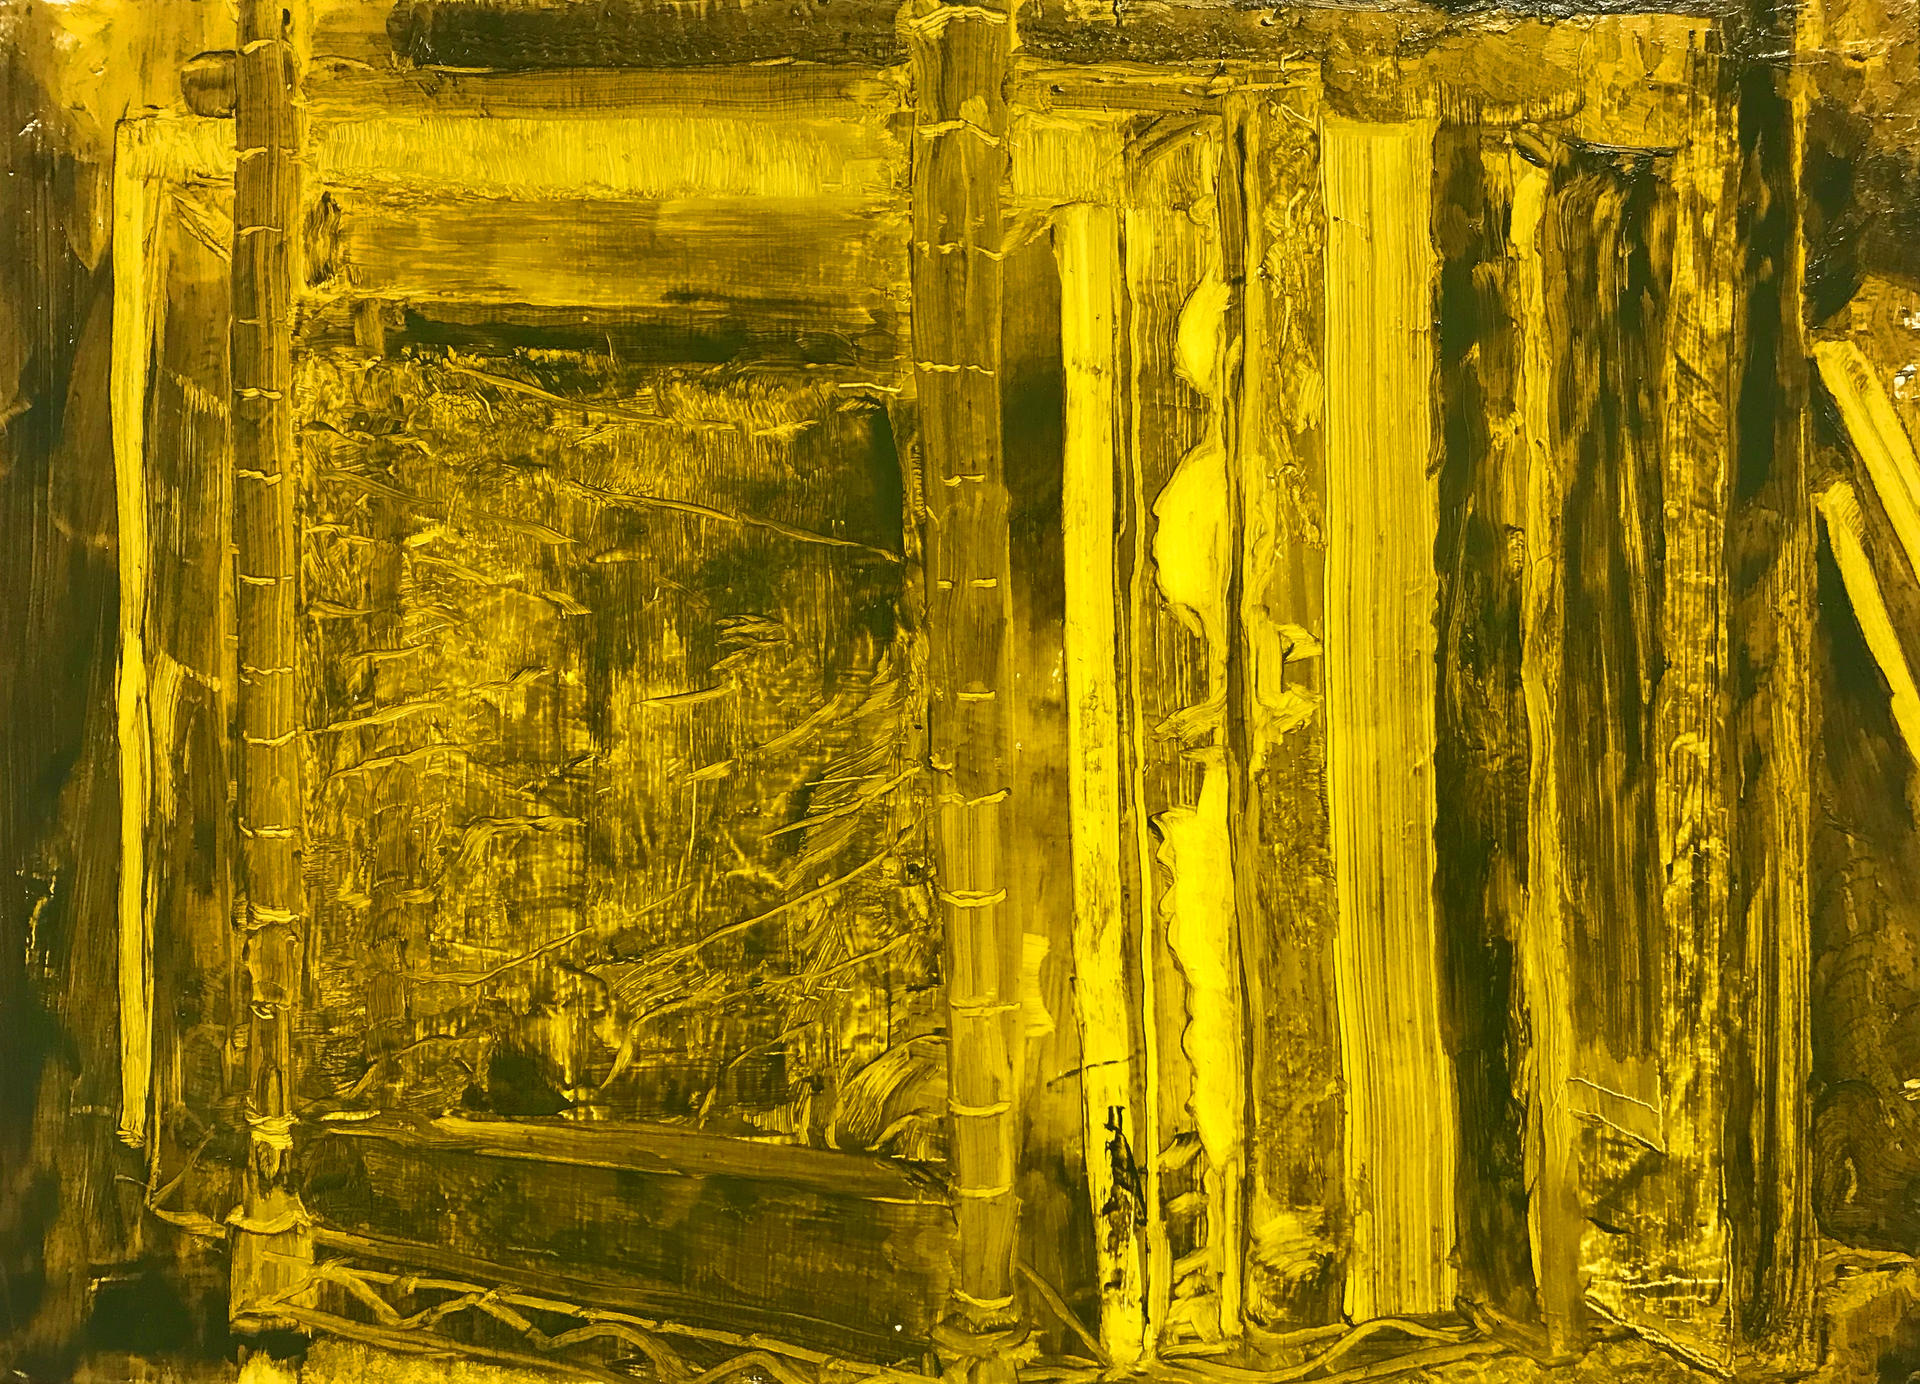 yellow-green monochromatic painting of paintings on a shelf